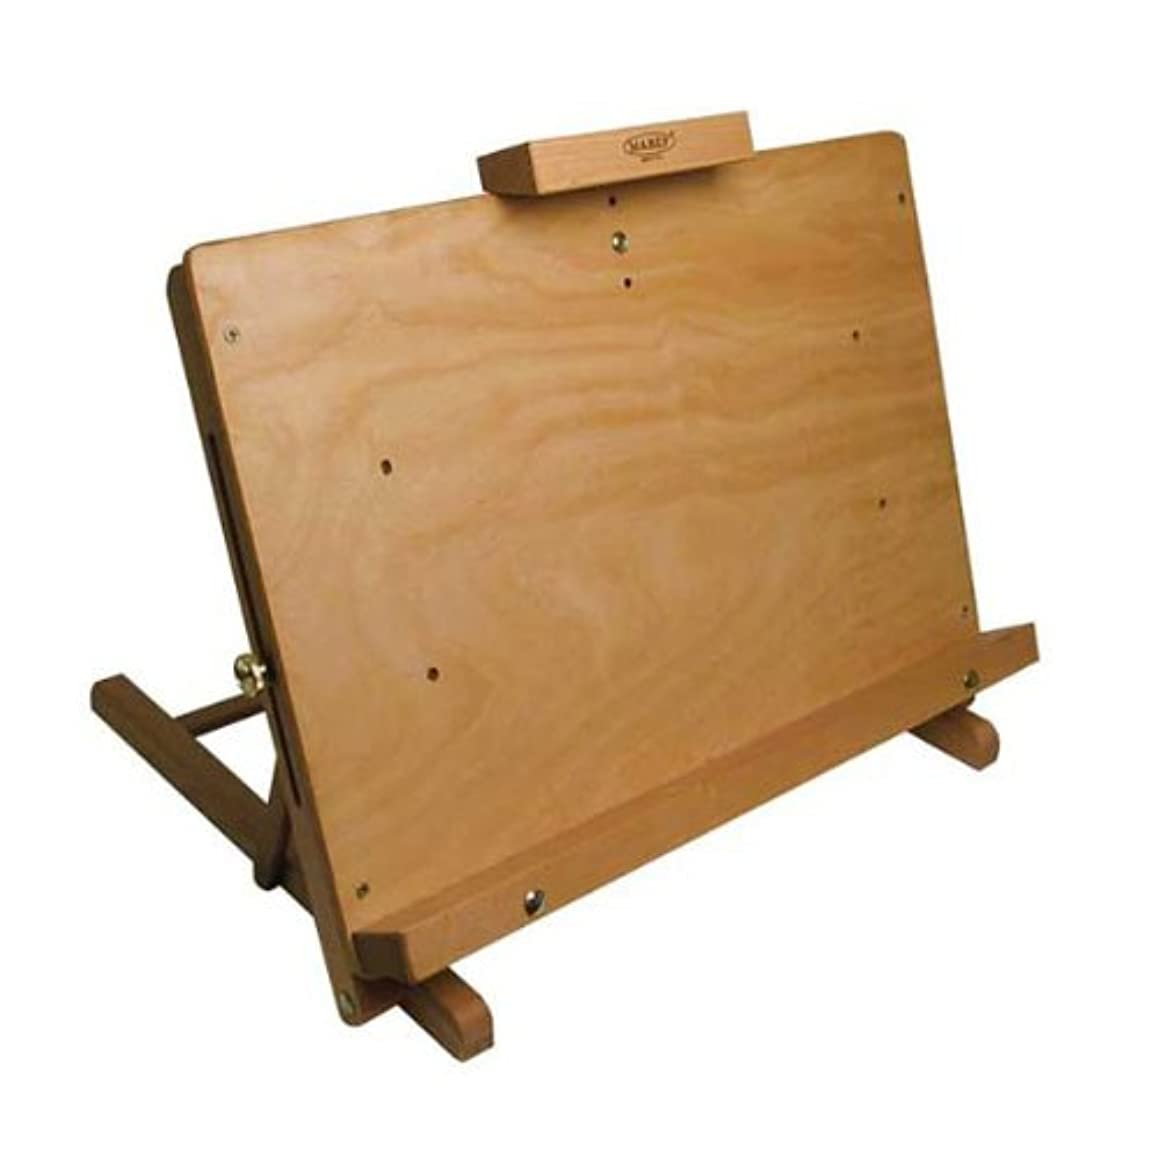 Mabef Lectern Table Easel (MBM-34)